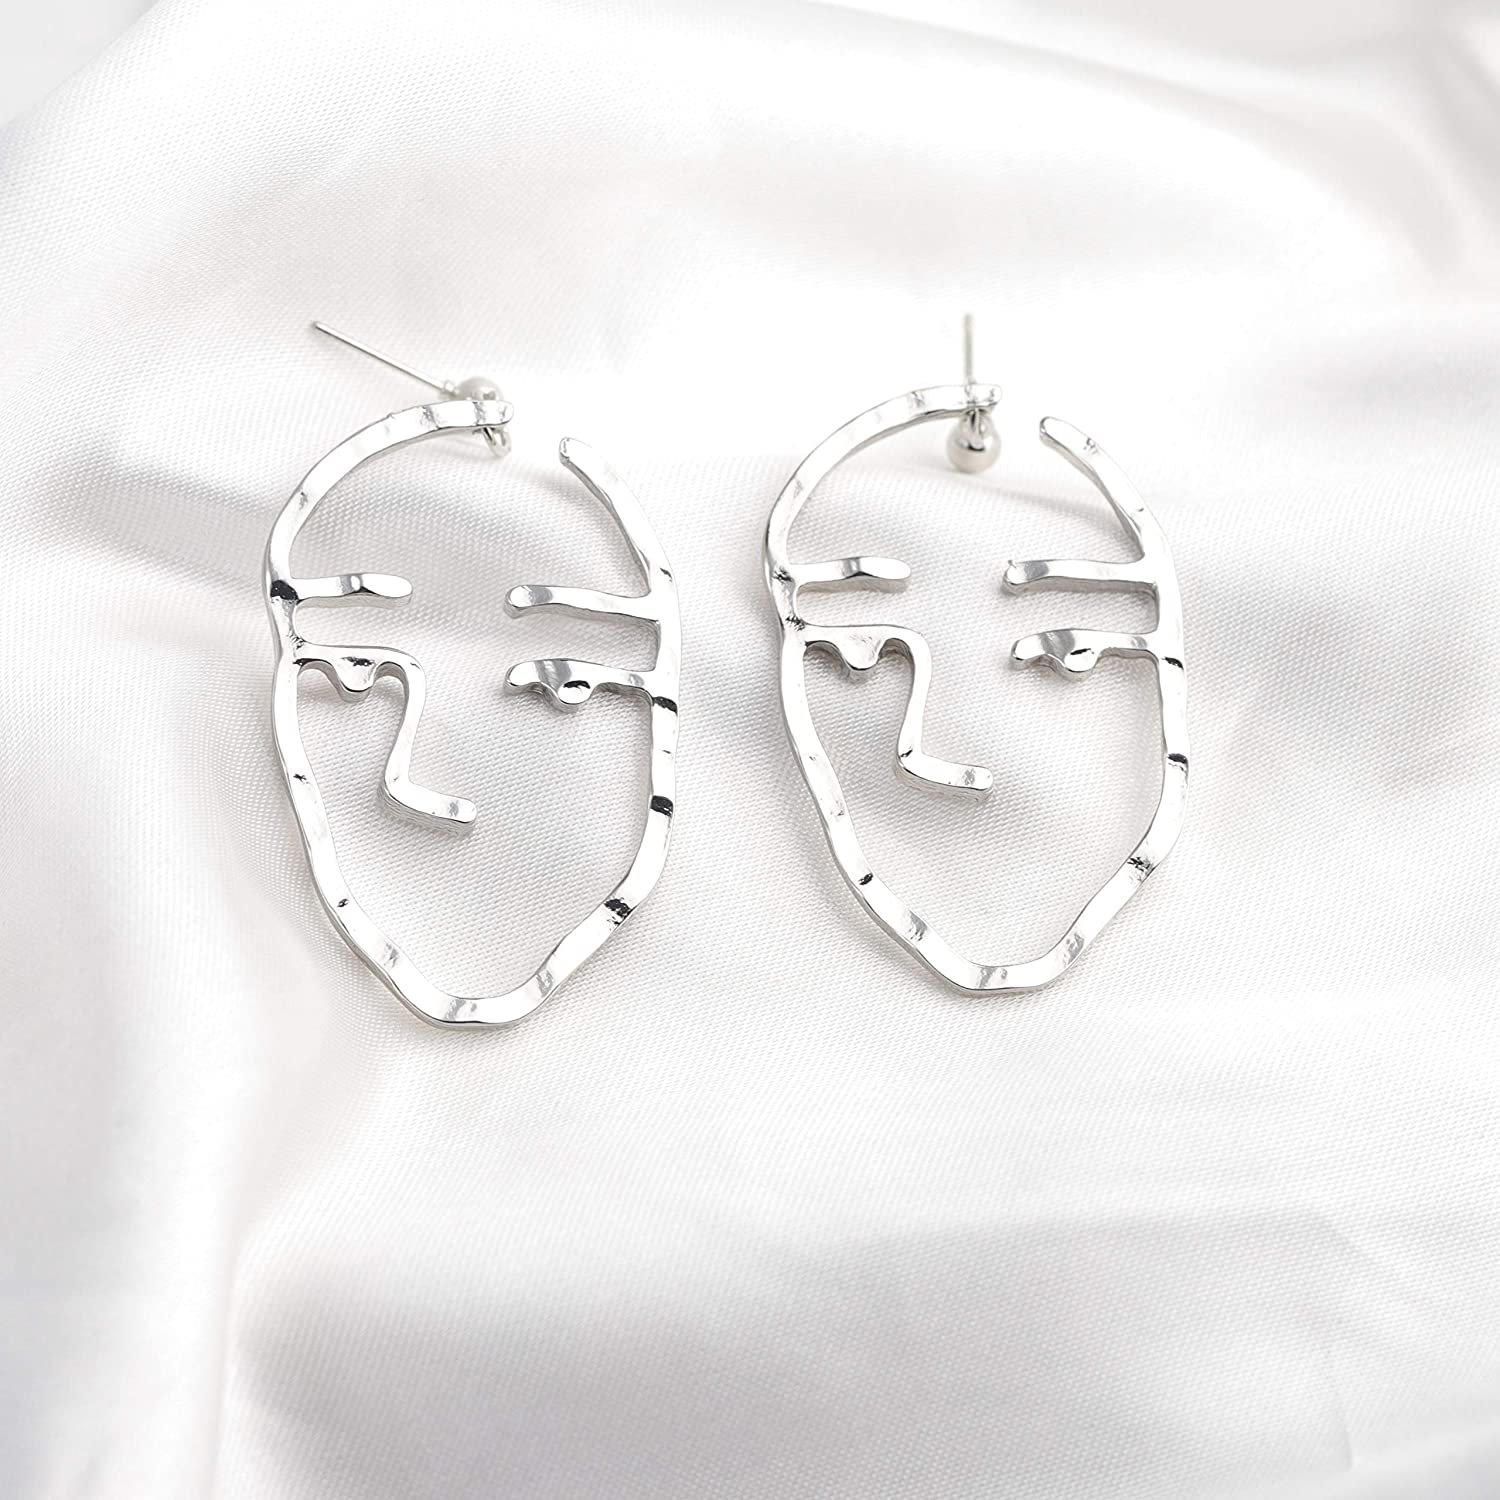 Silver FUSTYLE Face Earring Set Abstract Art Human Face Dangle Stud Earrings Silver Statement Earrings for Girls Teens Women